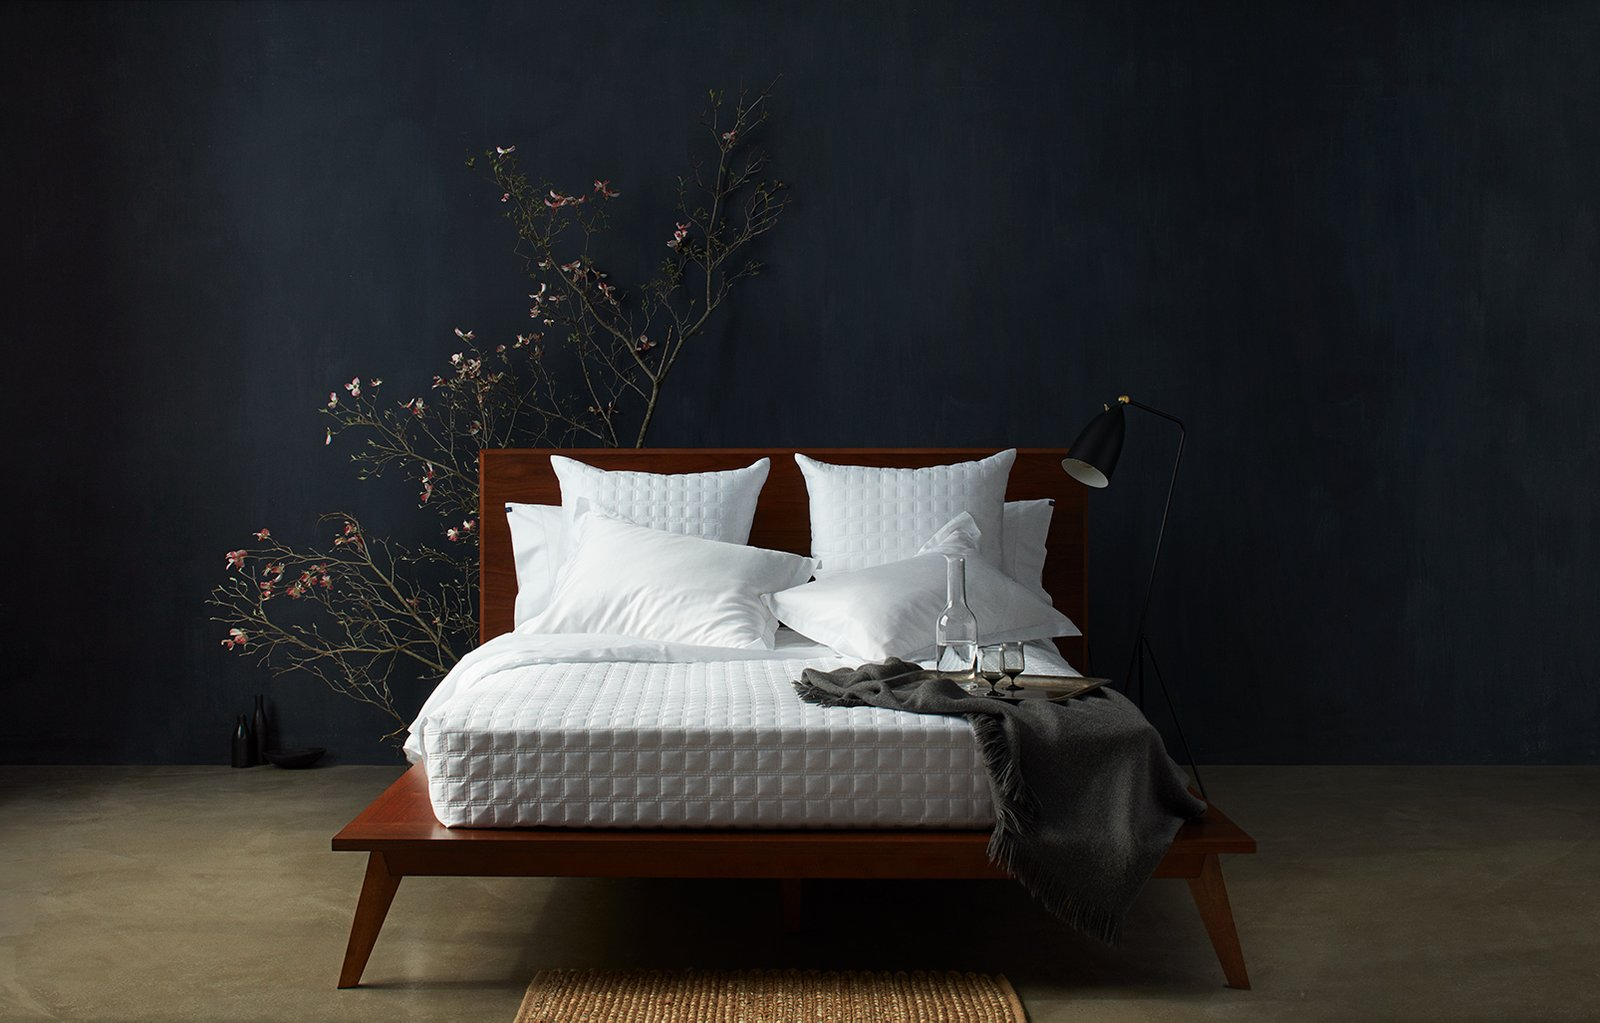 Photo 8 of 13 in The Best Places to Buy Hotel-Quality Bedding That Won't Break the Bank